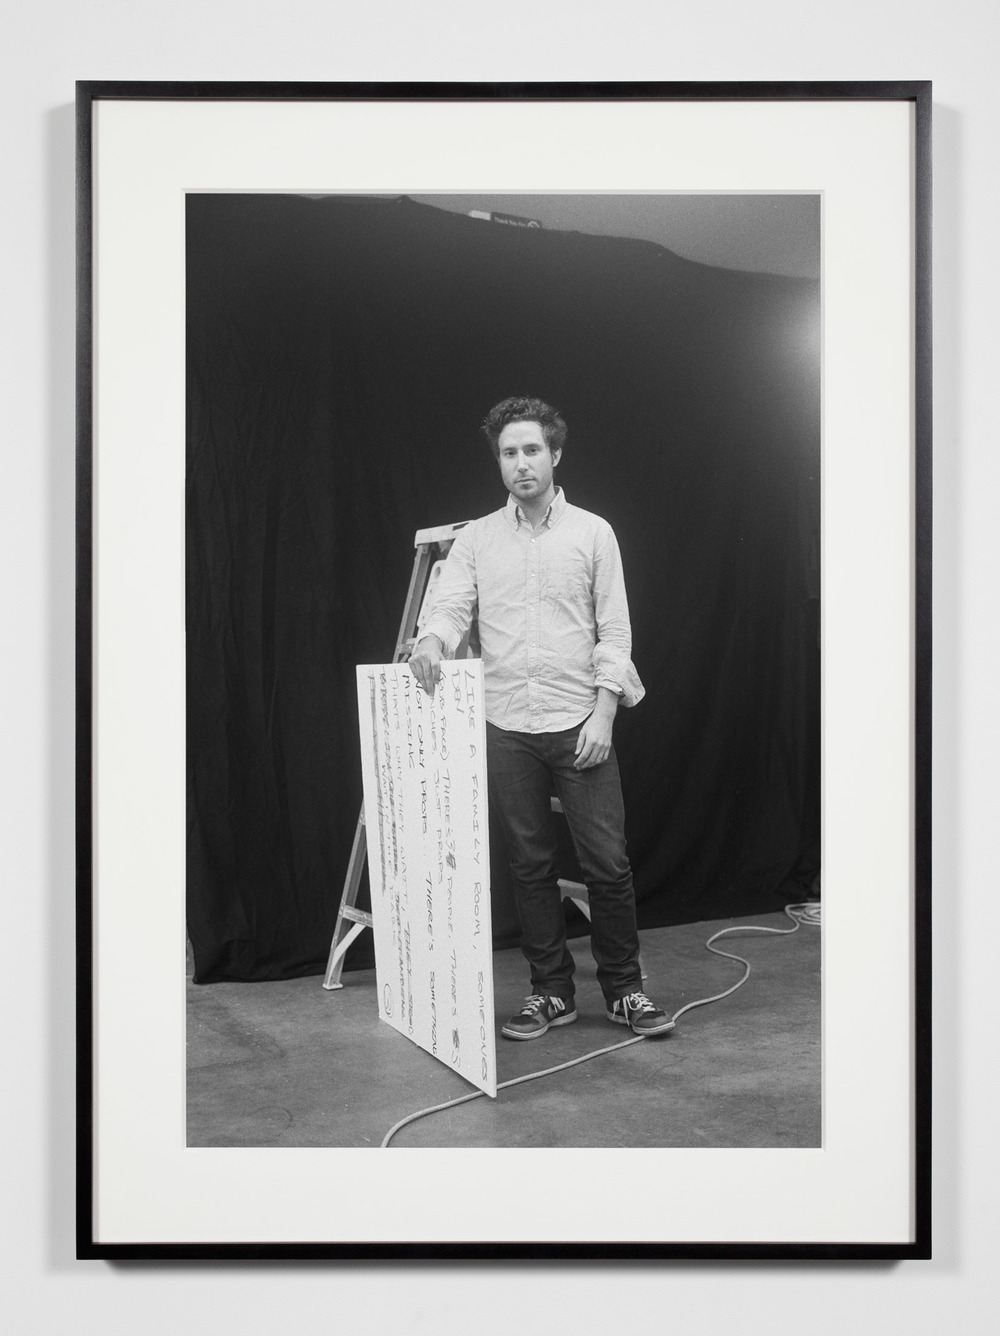 Nonprofit Associate Curator, Los Angeles, California, February 16, 2009    2011   Epson Ultrachrome K3 archival ink jet print on Hahnemühle Photo Rag paper  36 3/8 x 26 3/8 inches   Industrial Portraits, 2008–